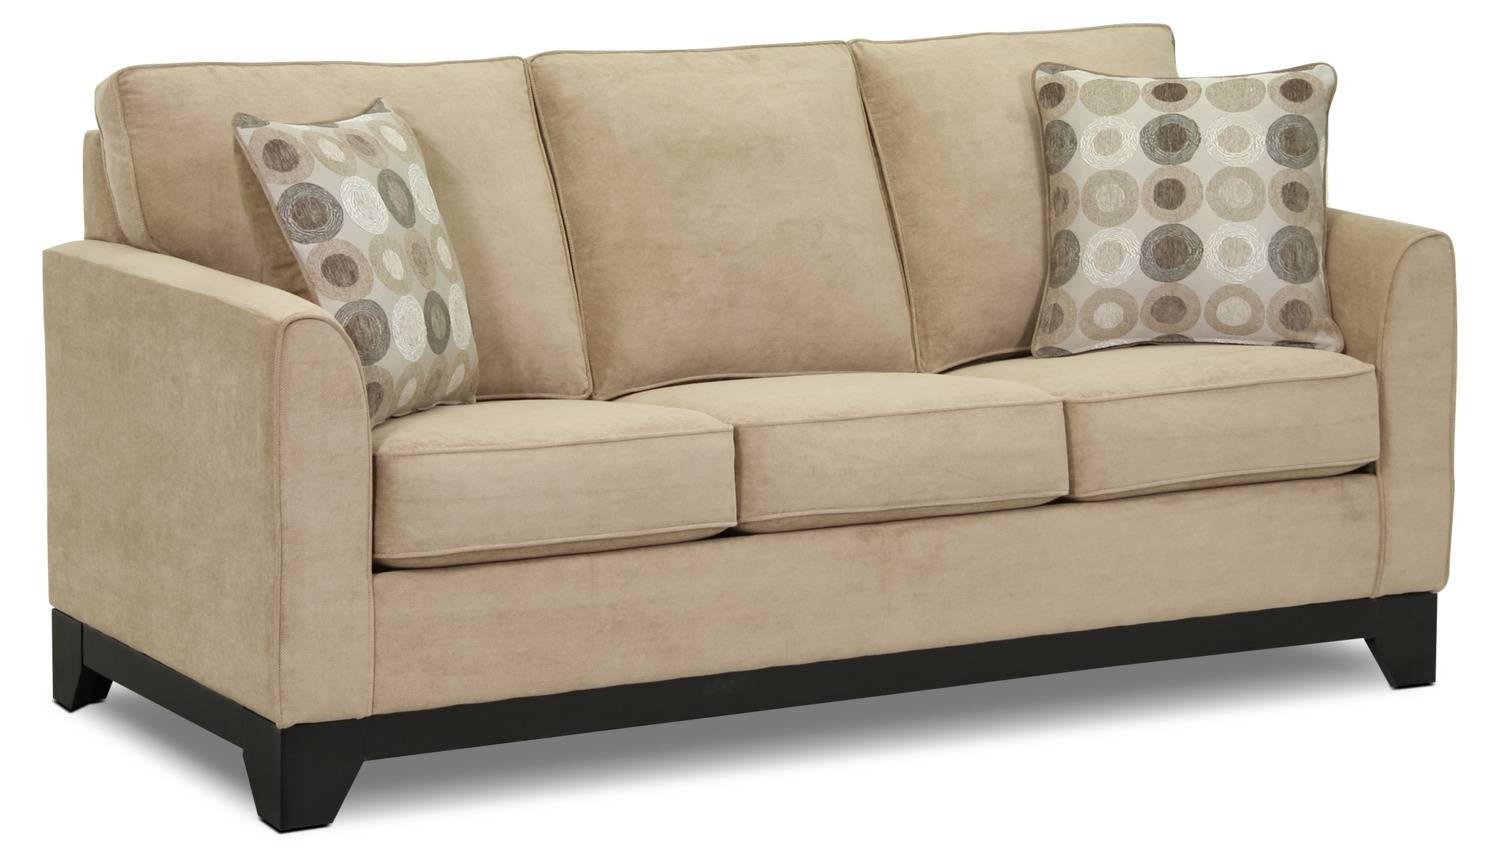 Sofa Beds & Futons | Leon's Pertaining To Sofa Beds (View 13 of 15)